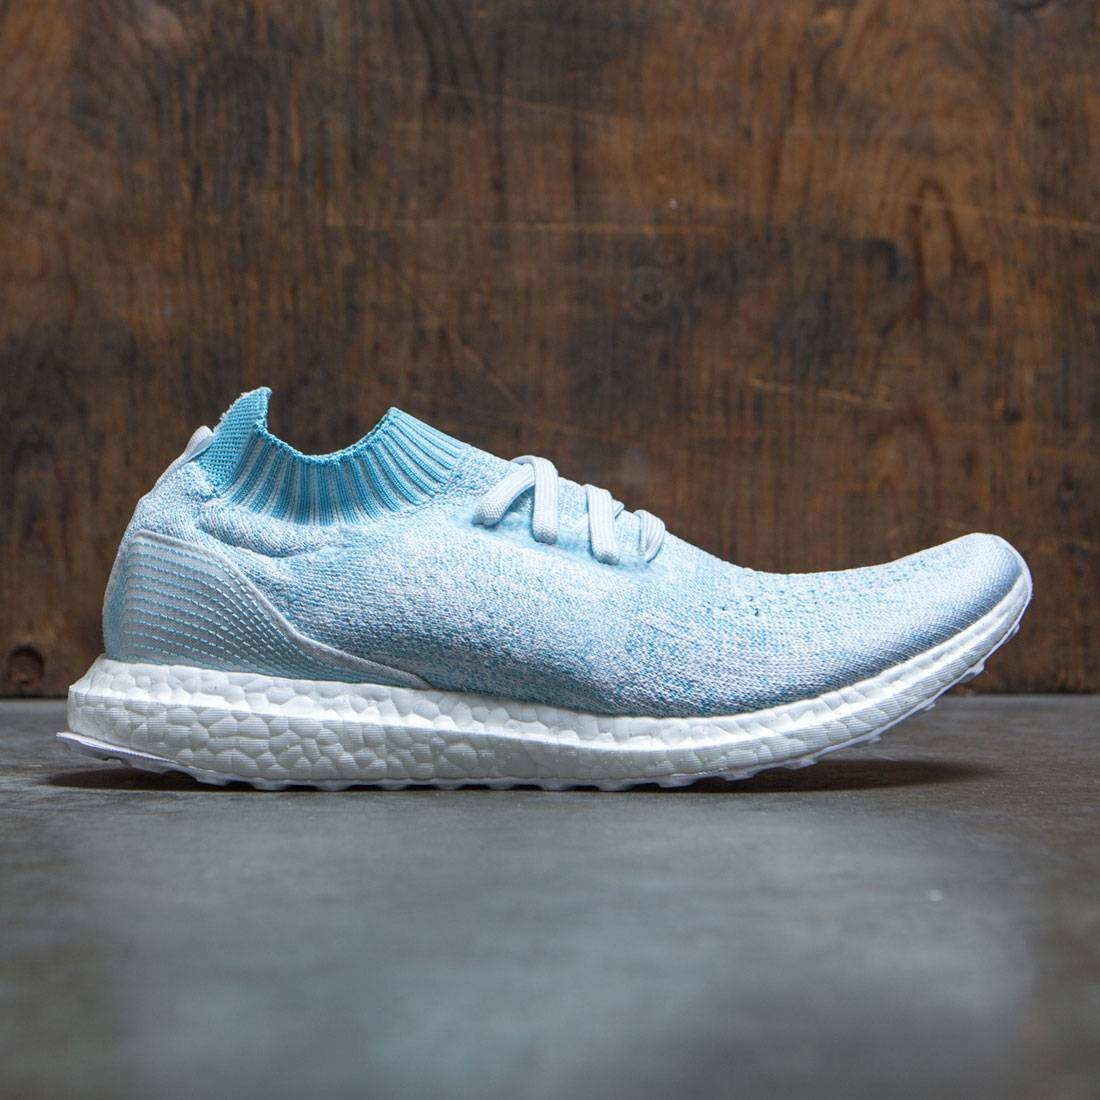 2edd82bd082 Adidas Men UltraBOOST Uncaged Parley blue icey blue footwear white